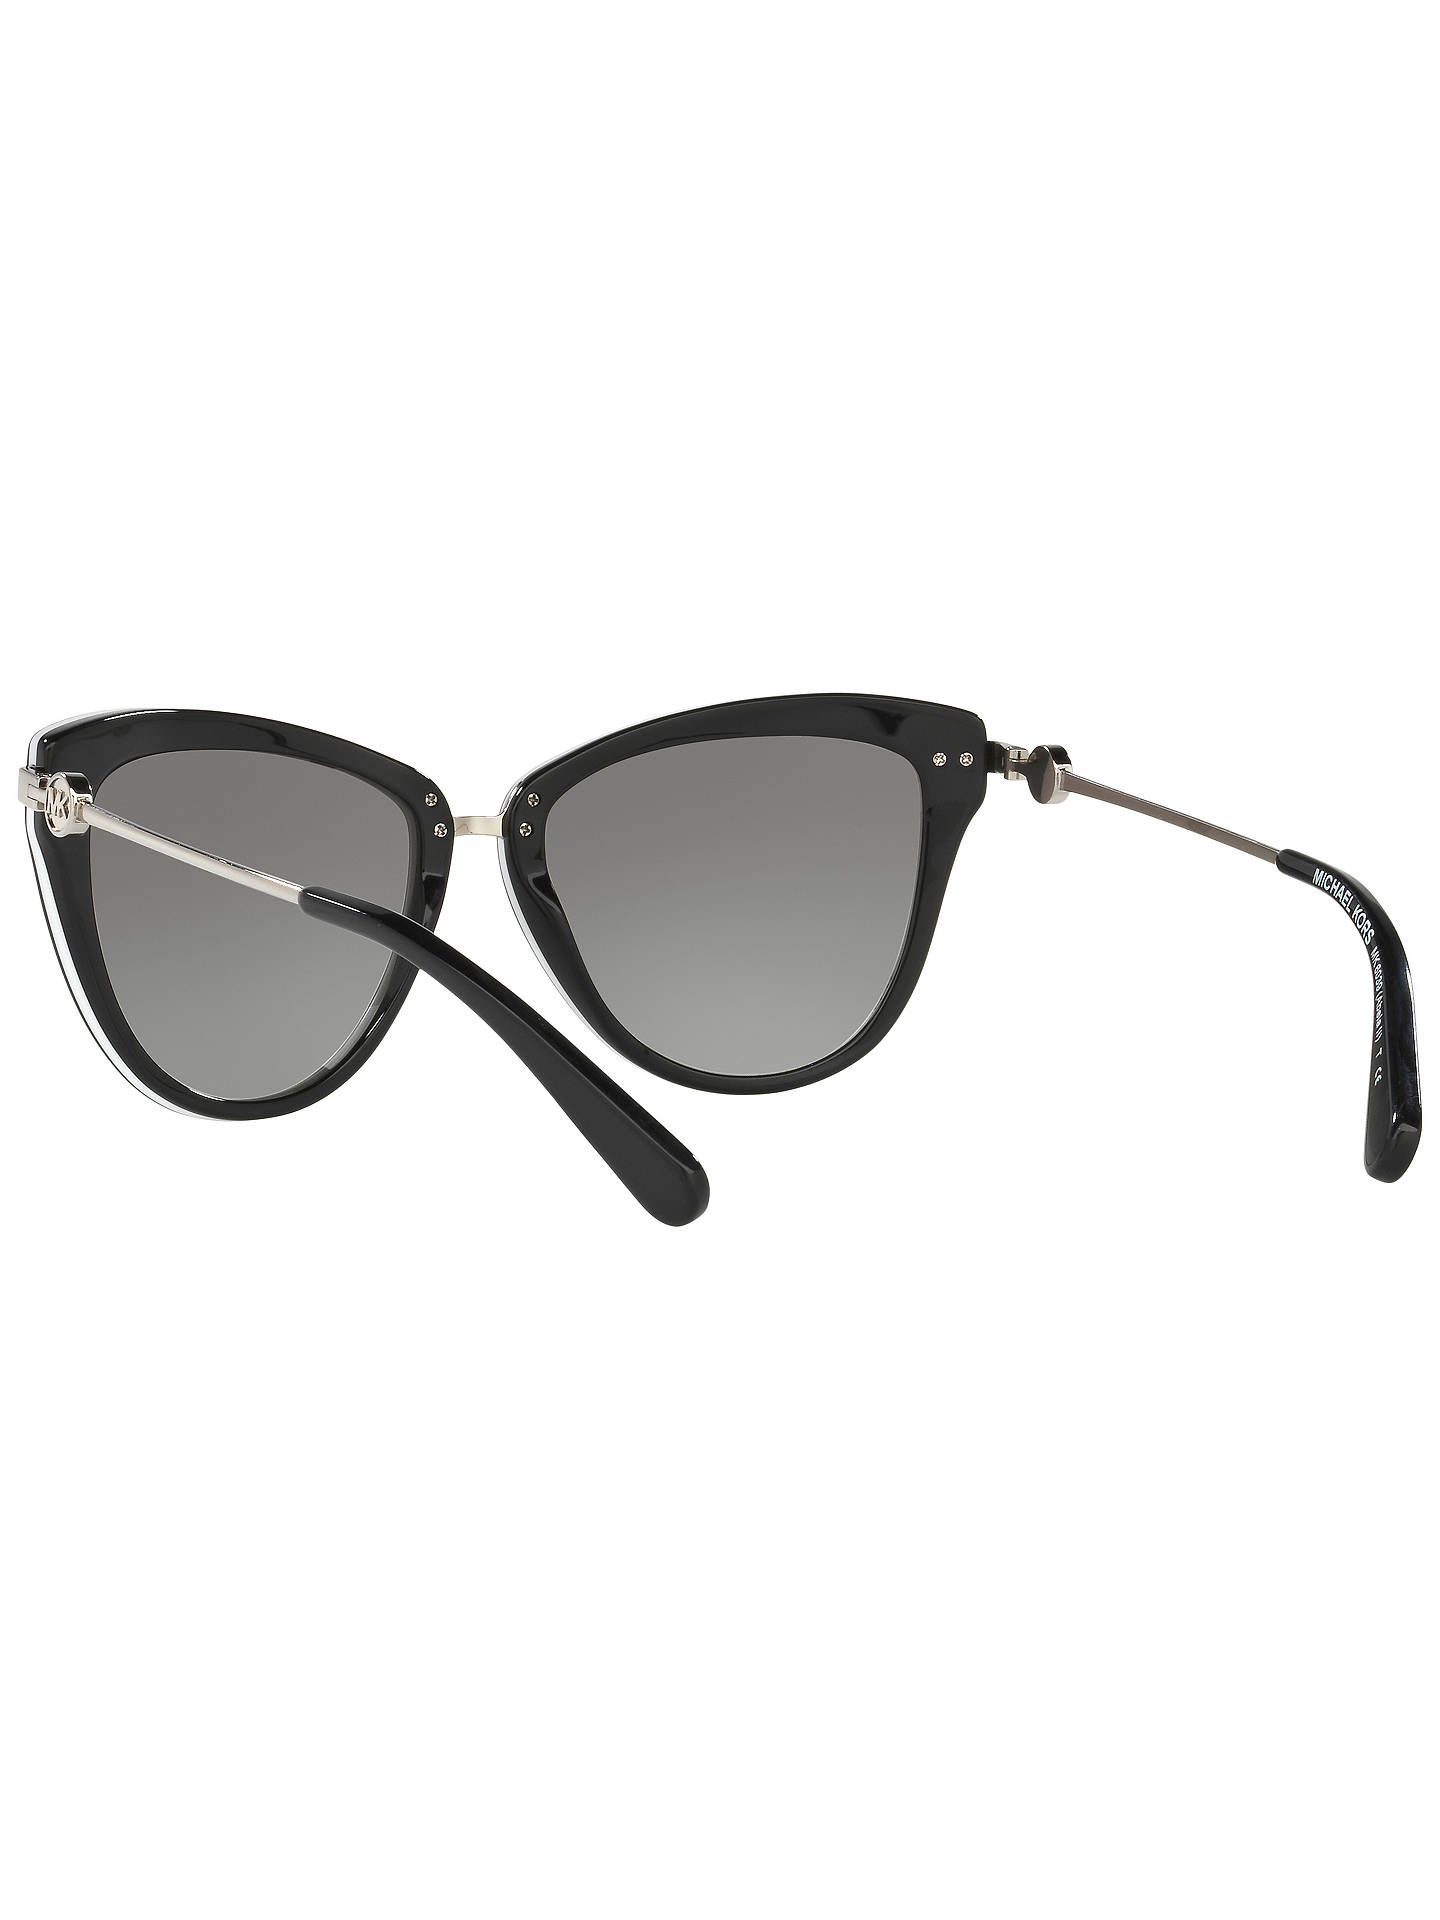 BuyMicheal Kors Round,Sunglasses, Black Online at johnlewis.com